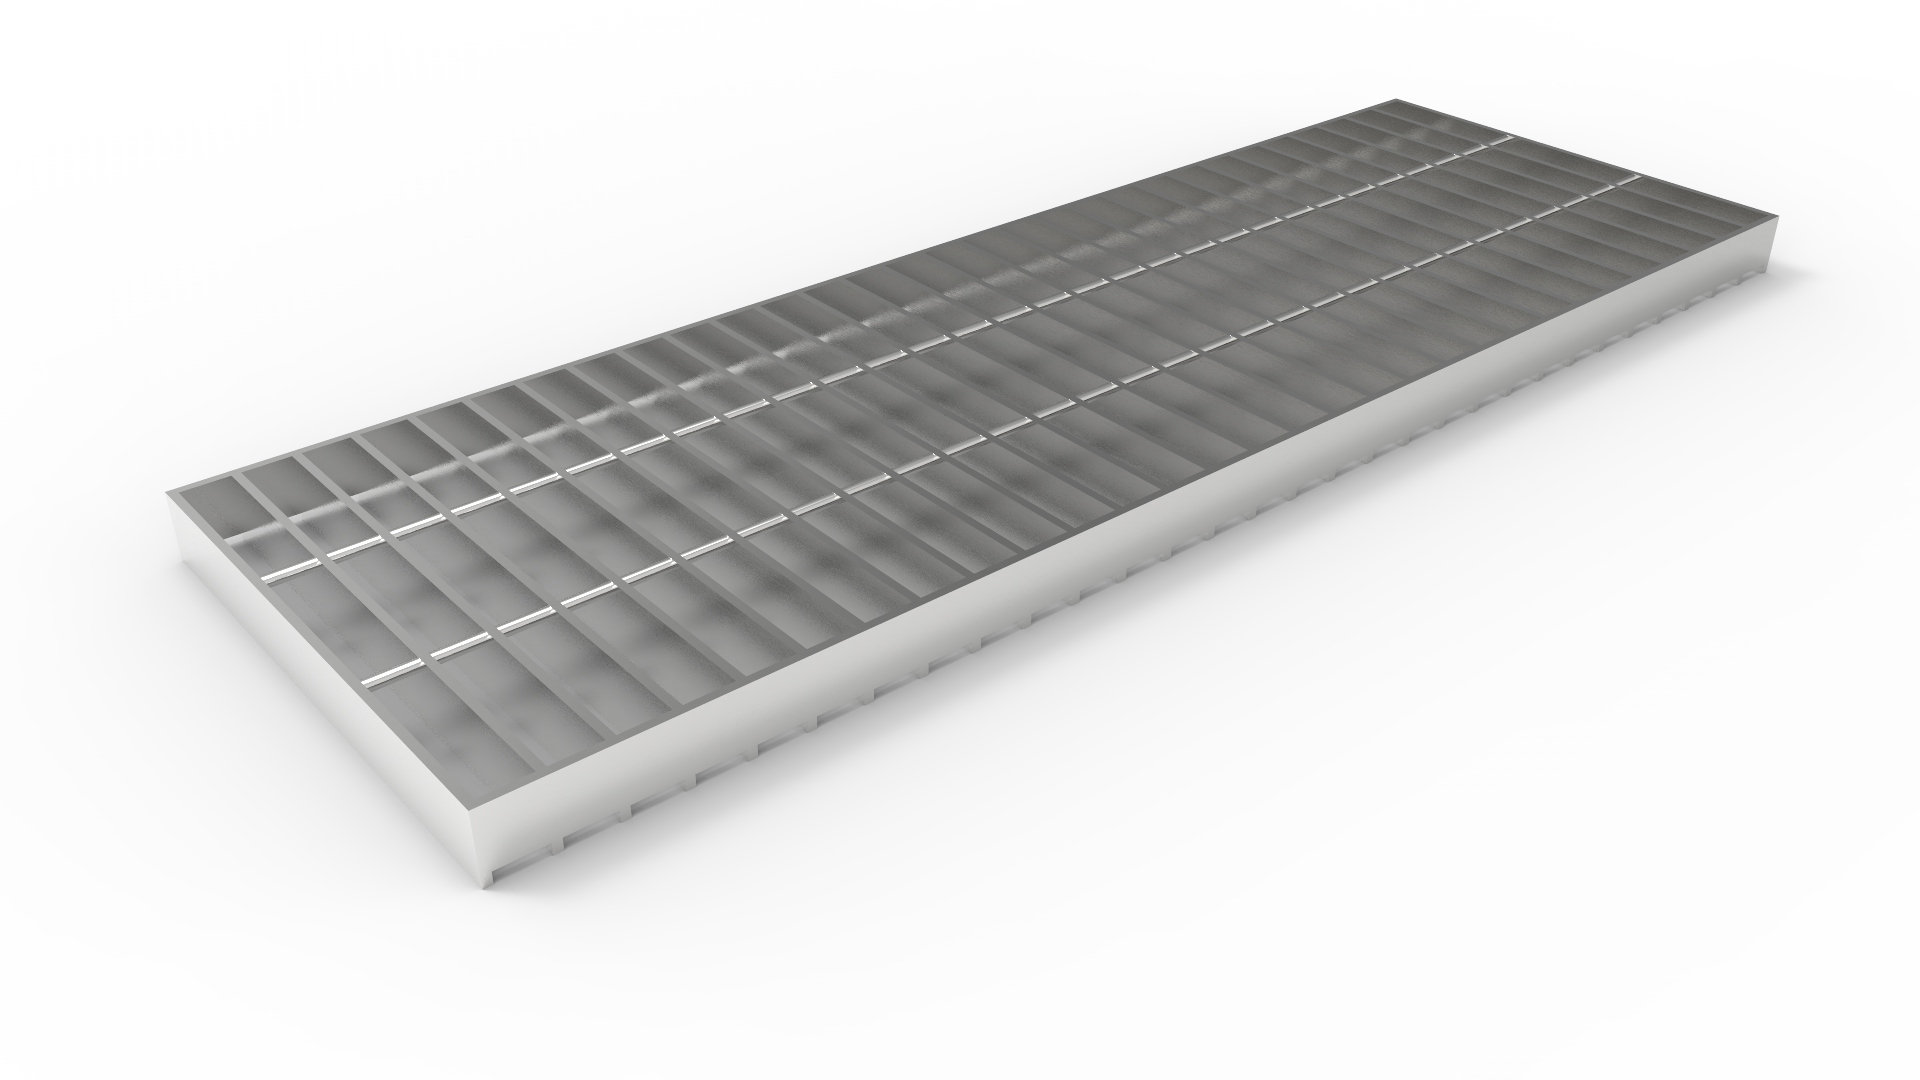 12 Quot Wide Stainless Steel Trench Drain Bar Grate Dura Trench